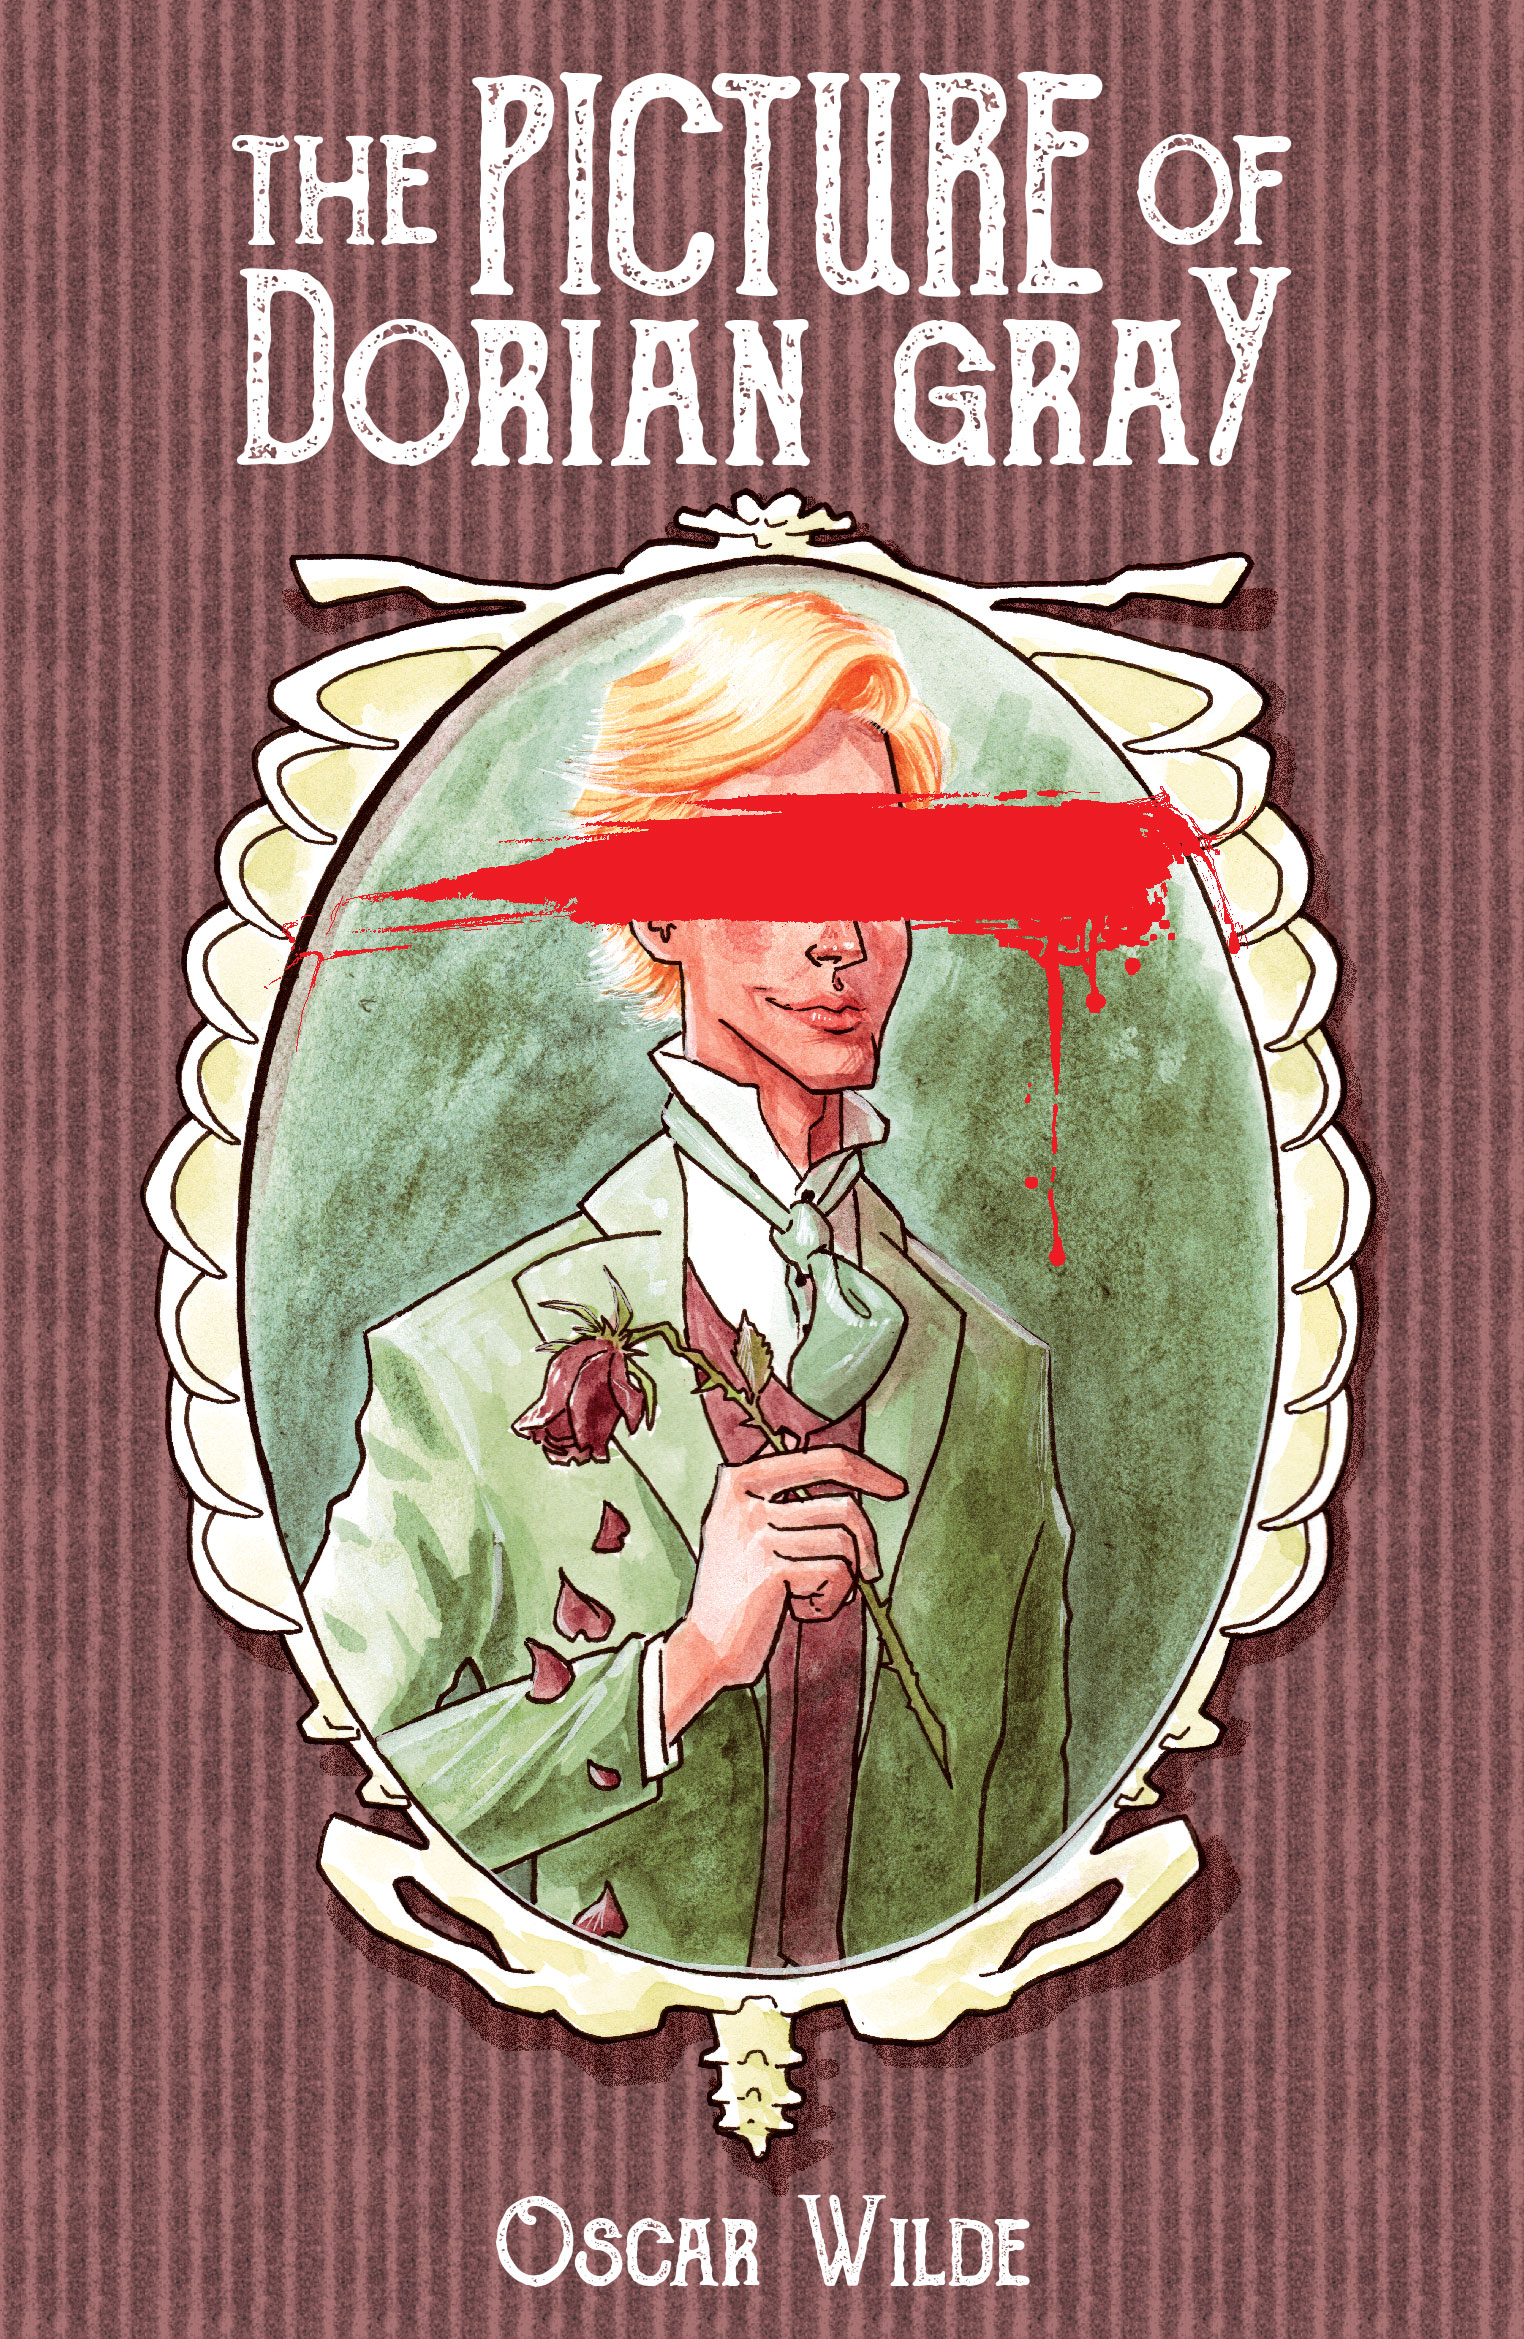 DorianGray-Book-Cover.jpg